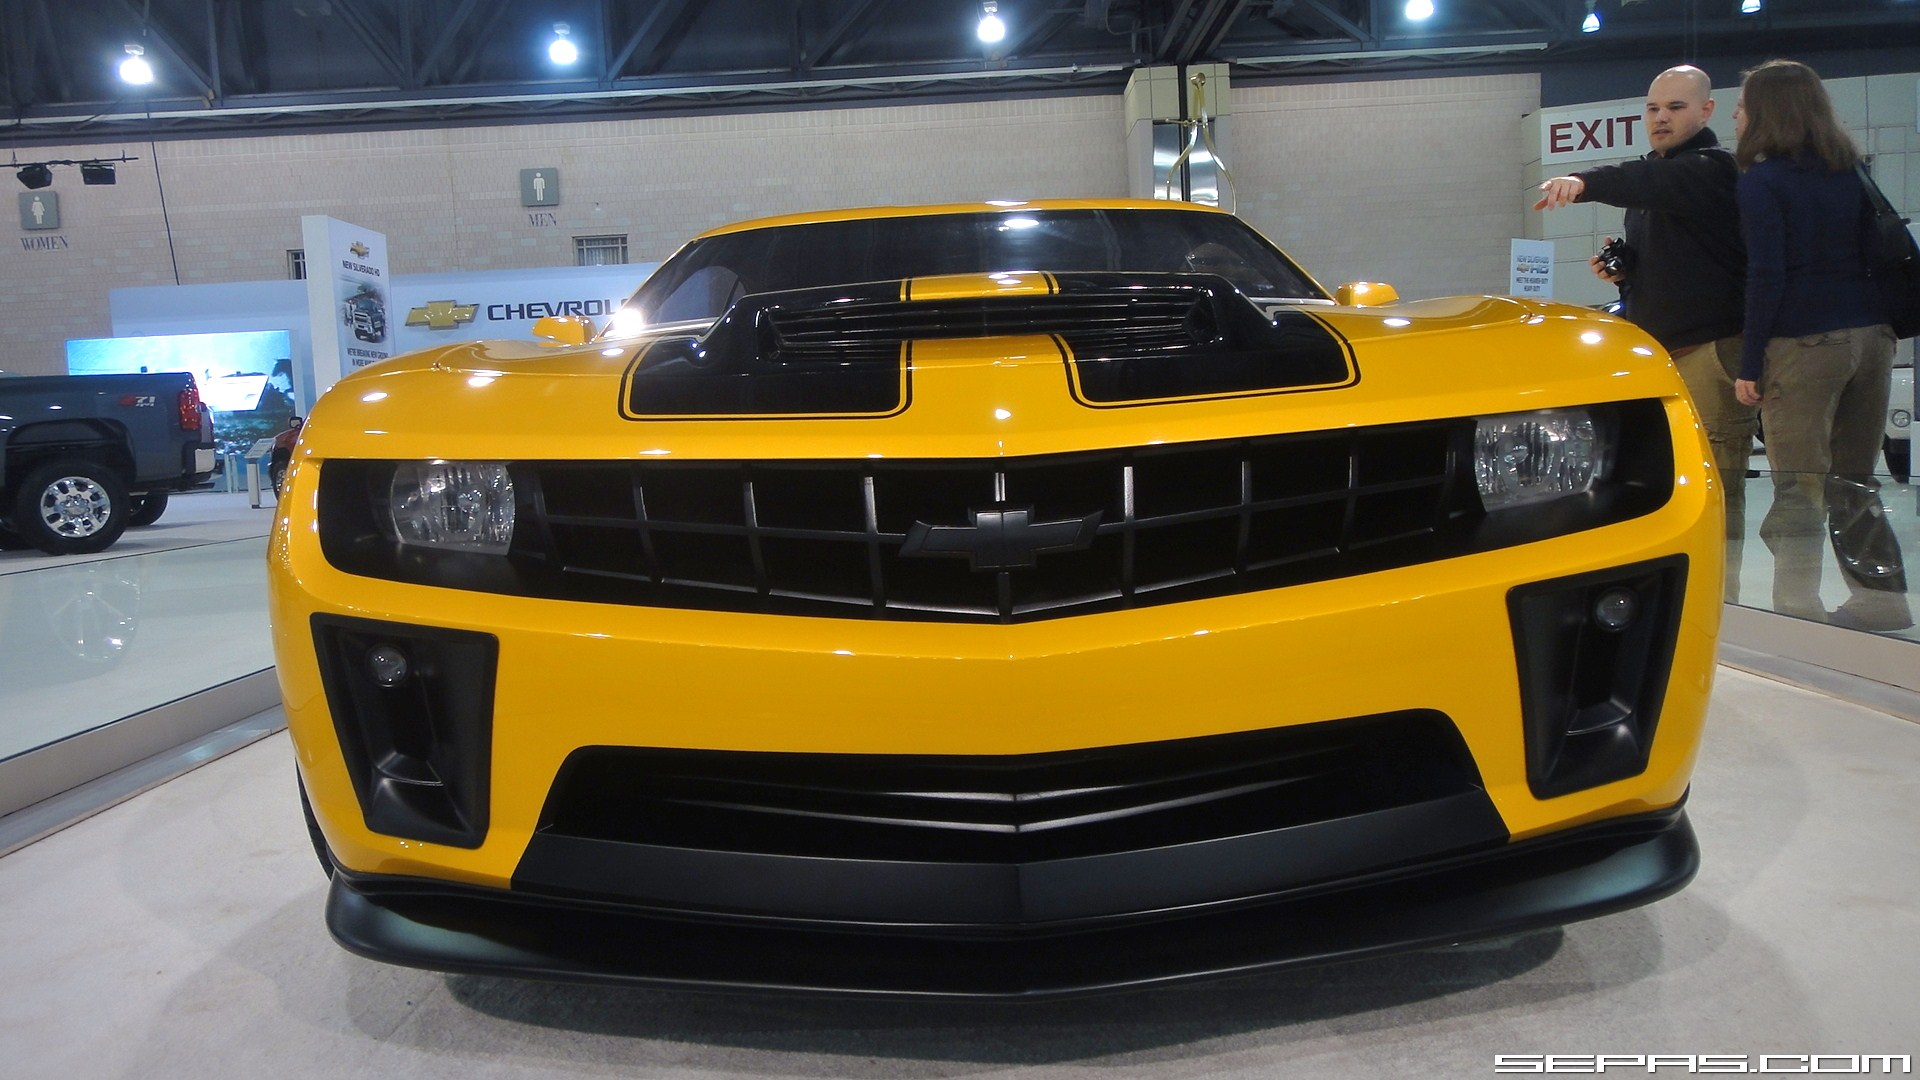 bumblebee fifth generation chevrolet camaro transformers 3 cars 3jpg. Black Bedroom Furniture Sets. Home Design Ideas